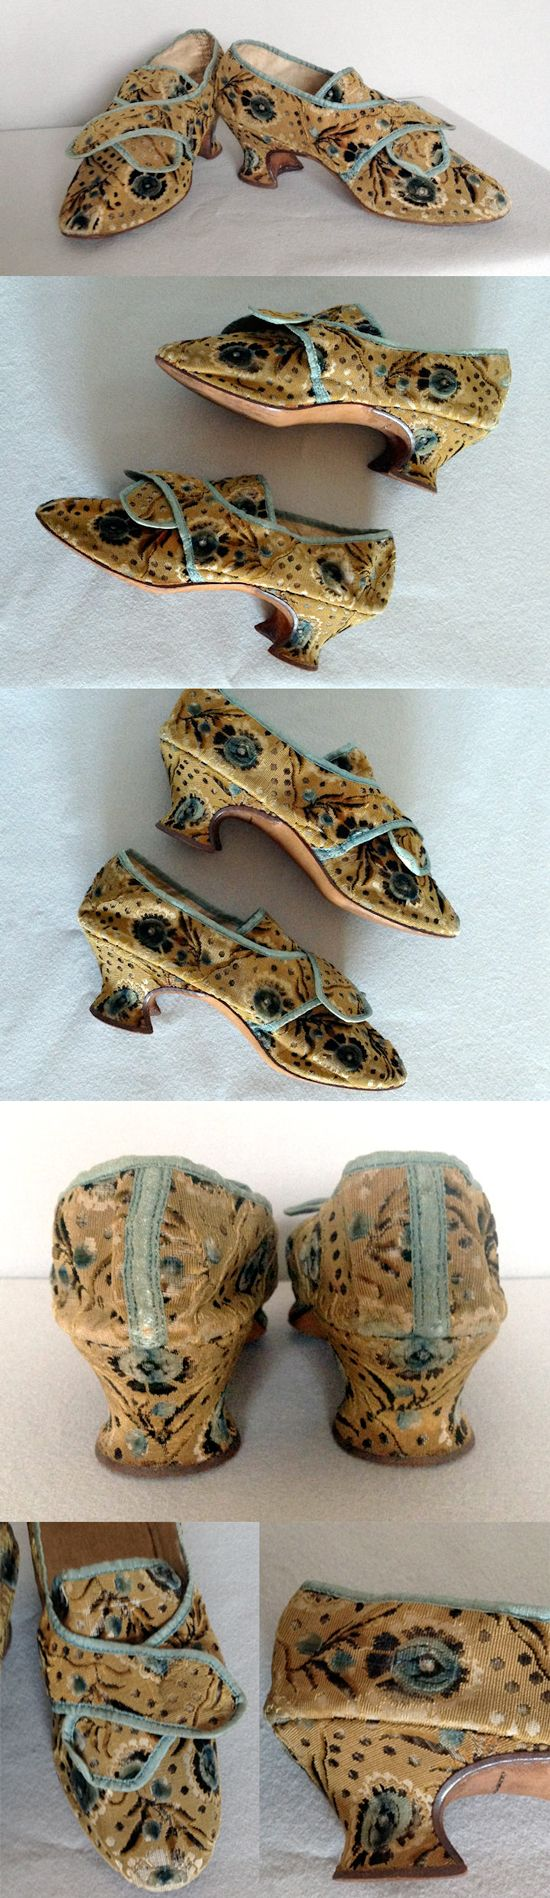 French Ciselé Voided Velvet Shoes, 1770's. very unusual being made with voided velvet, which may been have a remnant left over from the making of a gentleman's coat or waistcoat. It is not the type of fabric used for women's dresses. | Meg Andrews